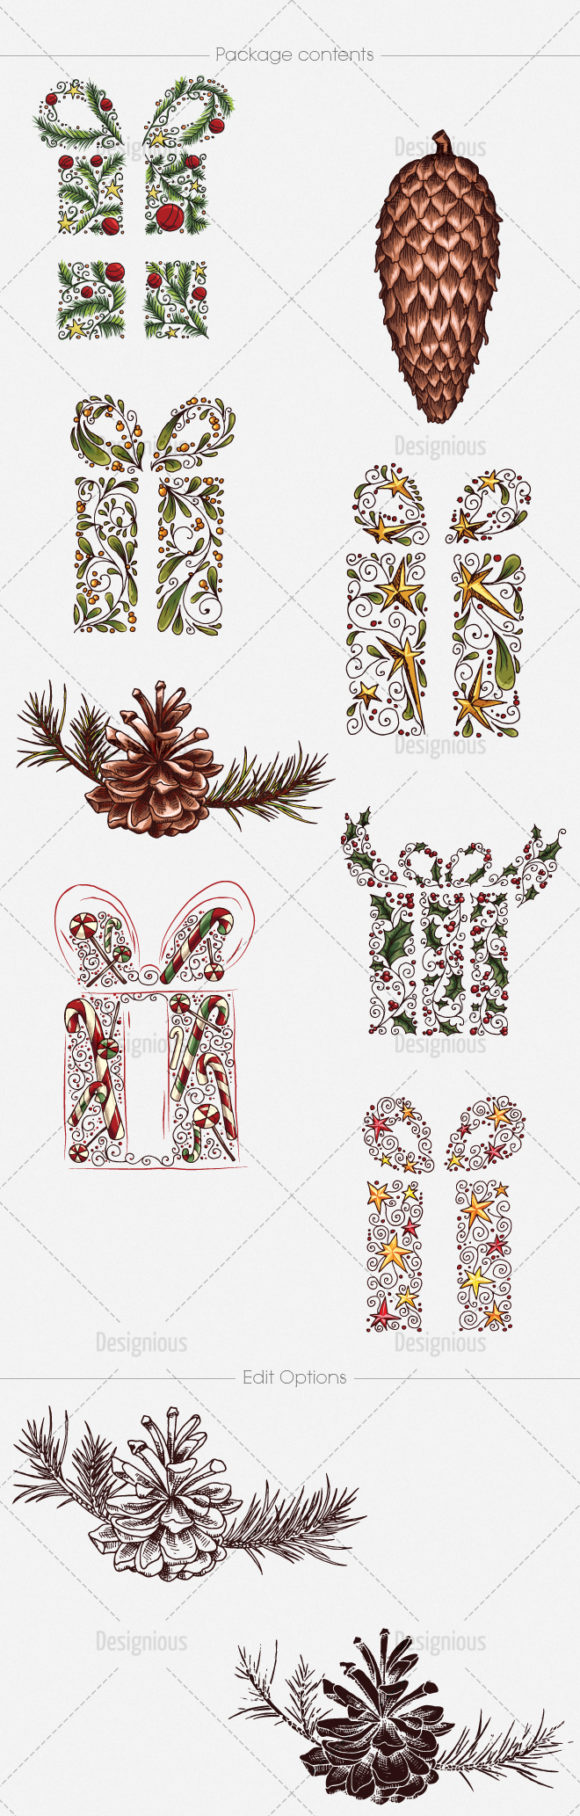 Christmas Vector Pack 20 products designious vector christmas 20 large